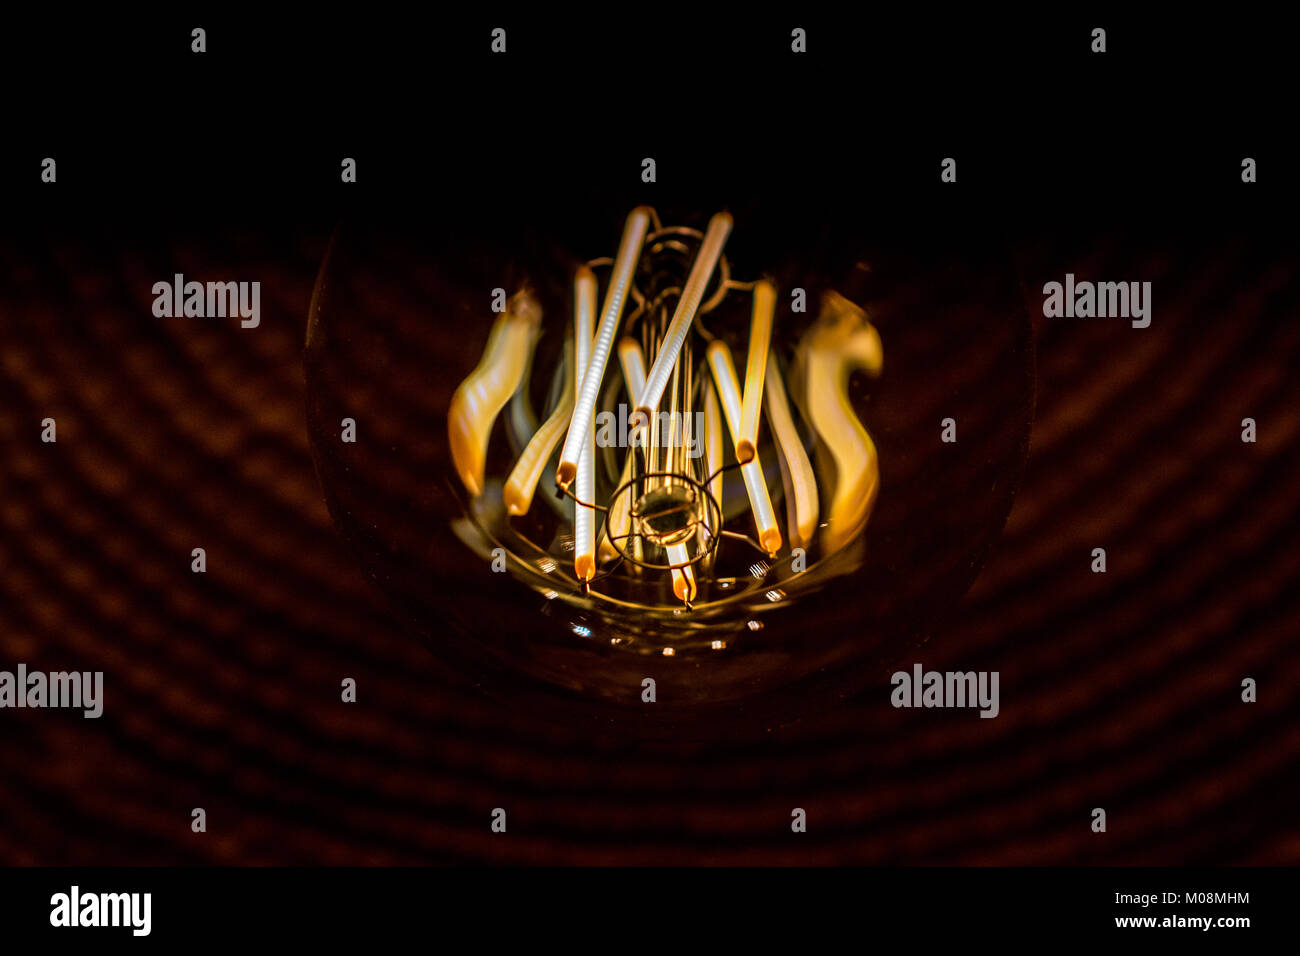 old golden radio stockfotos old golden radio bilder alamy. Black Bedroom Furniture Sets. Home Design Ideas